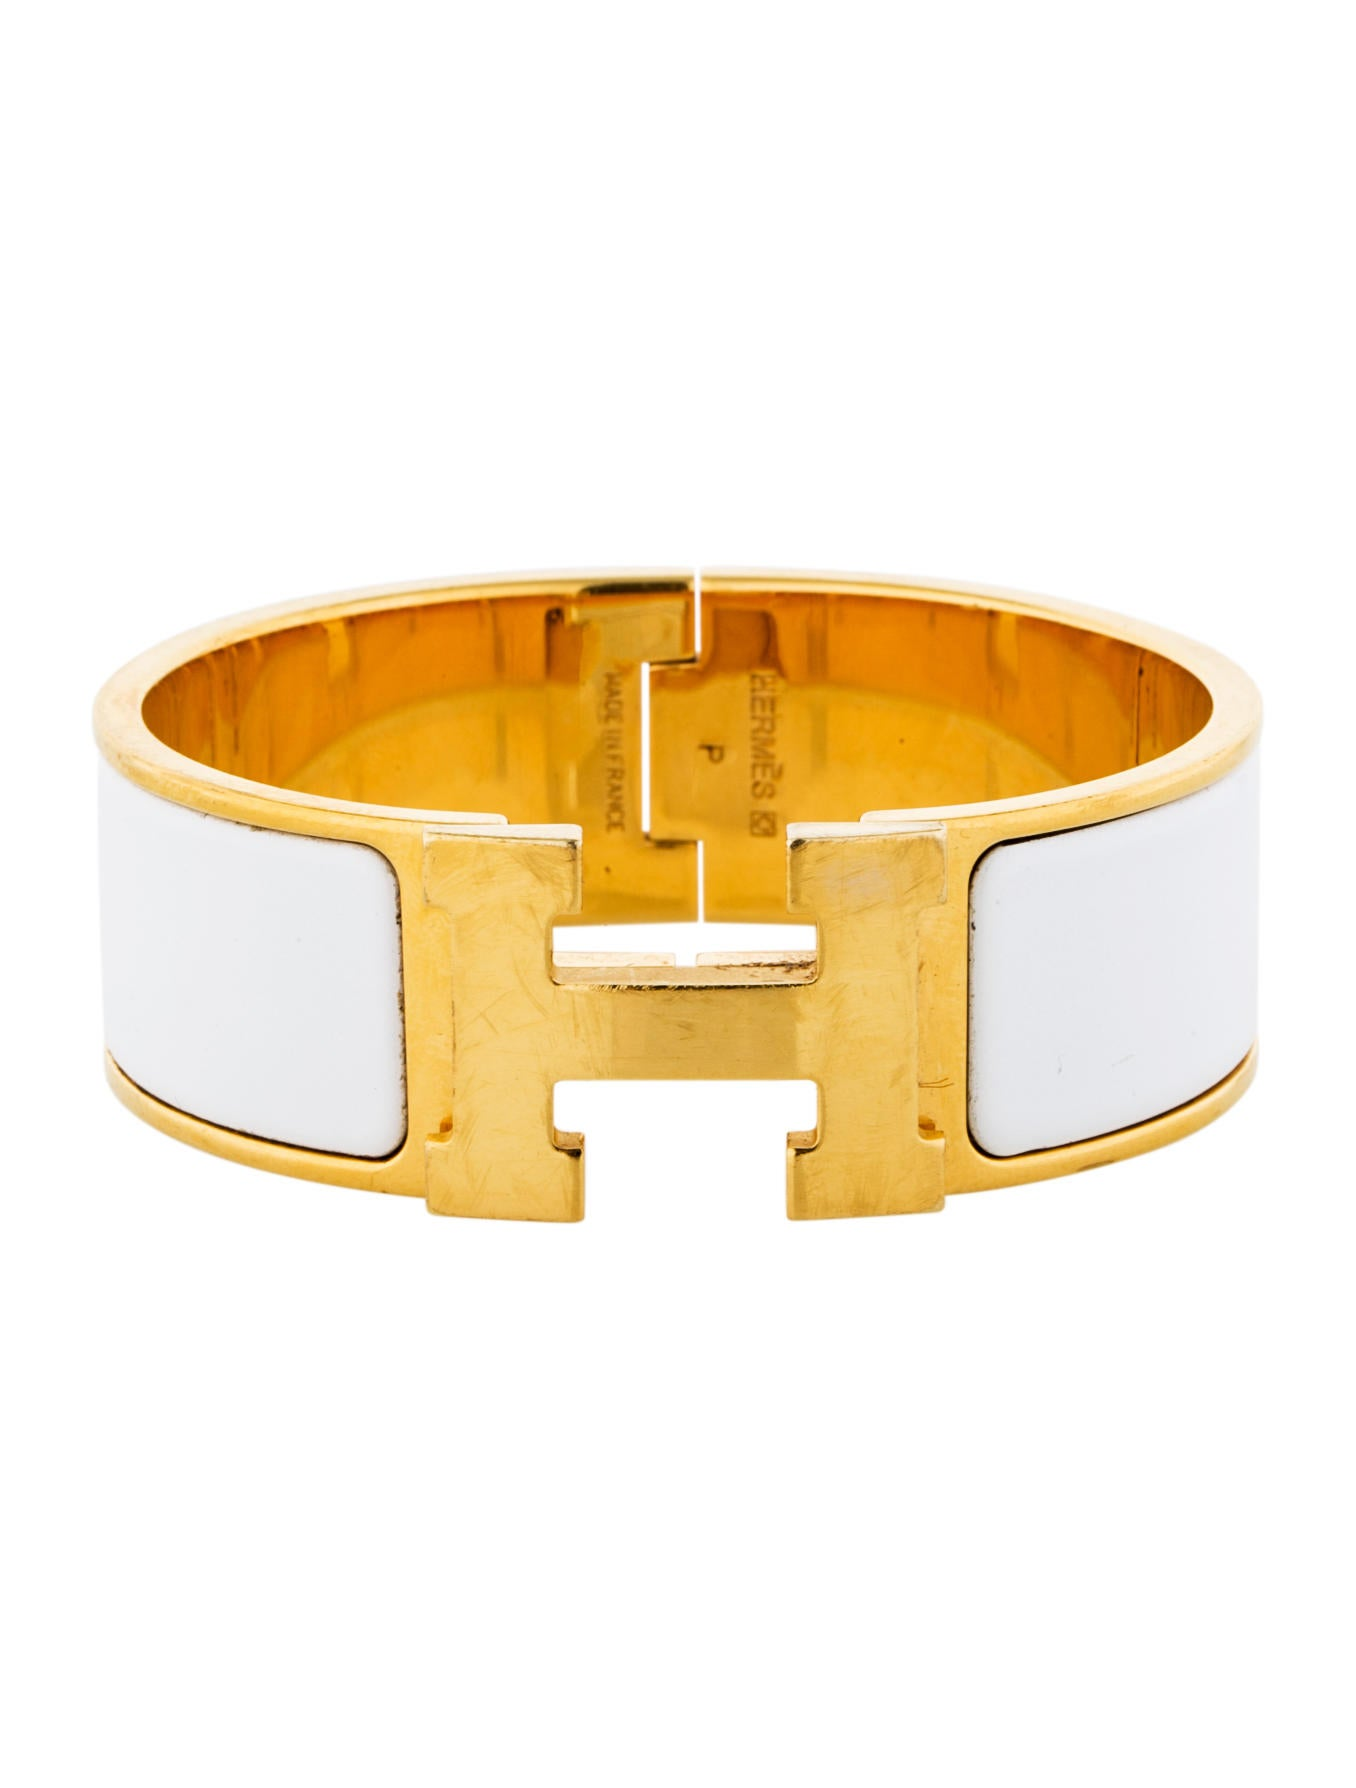 herm 232 s wide clic clac bracelet bracelets her33905 the realreal